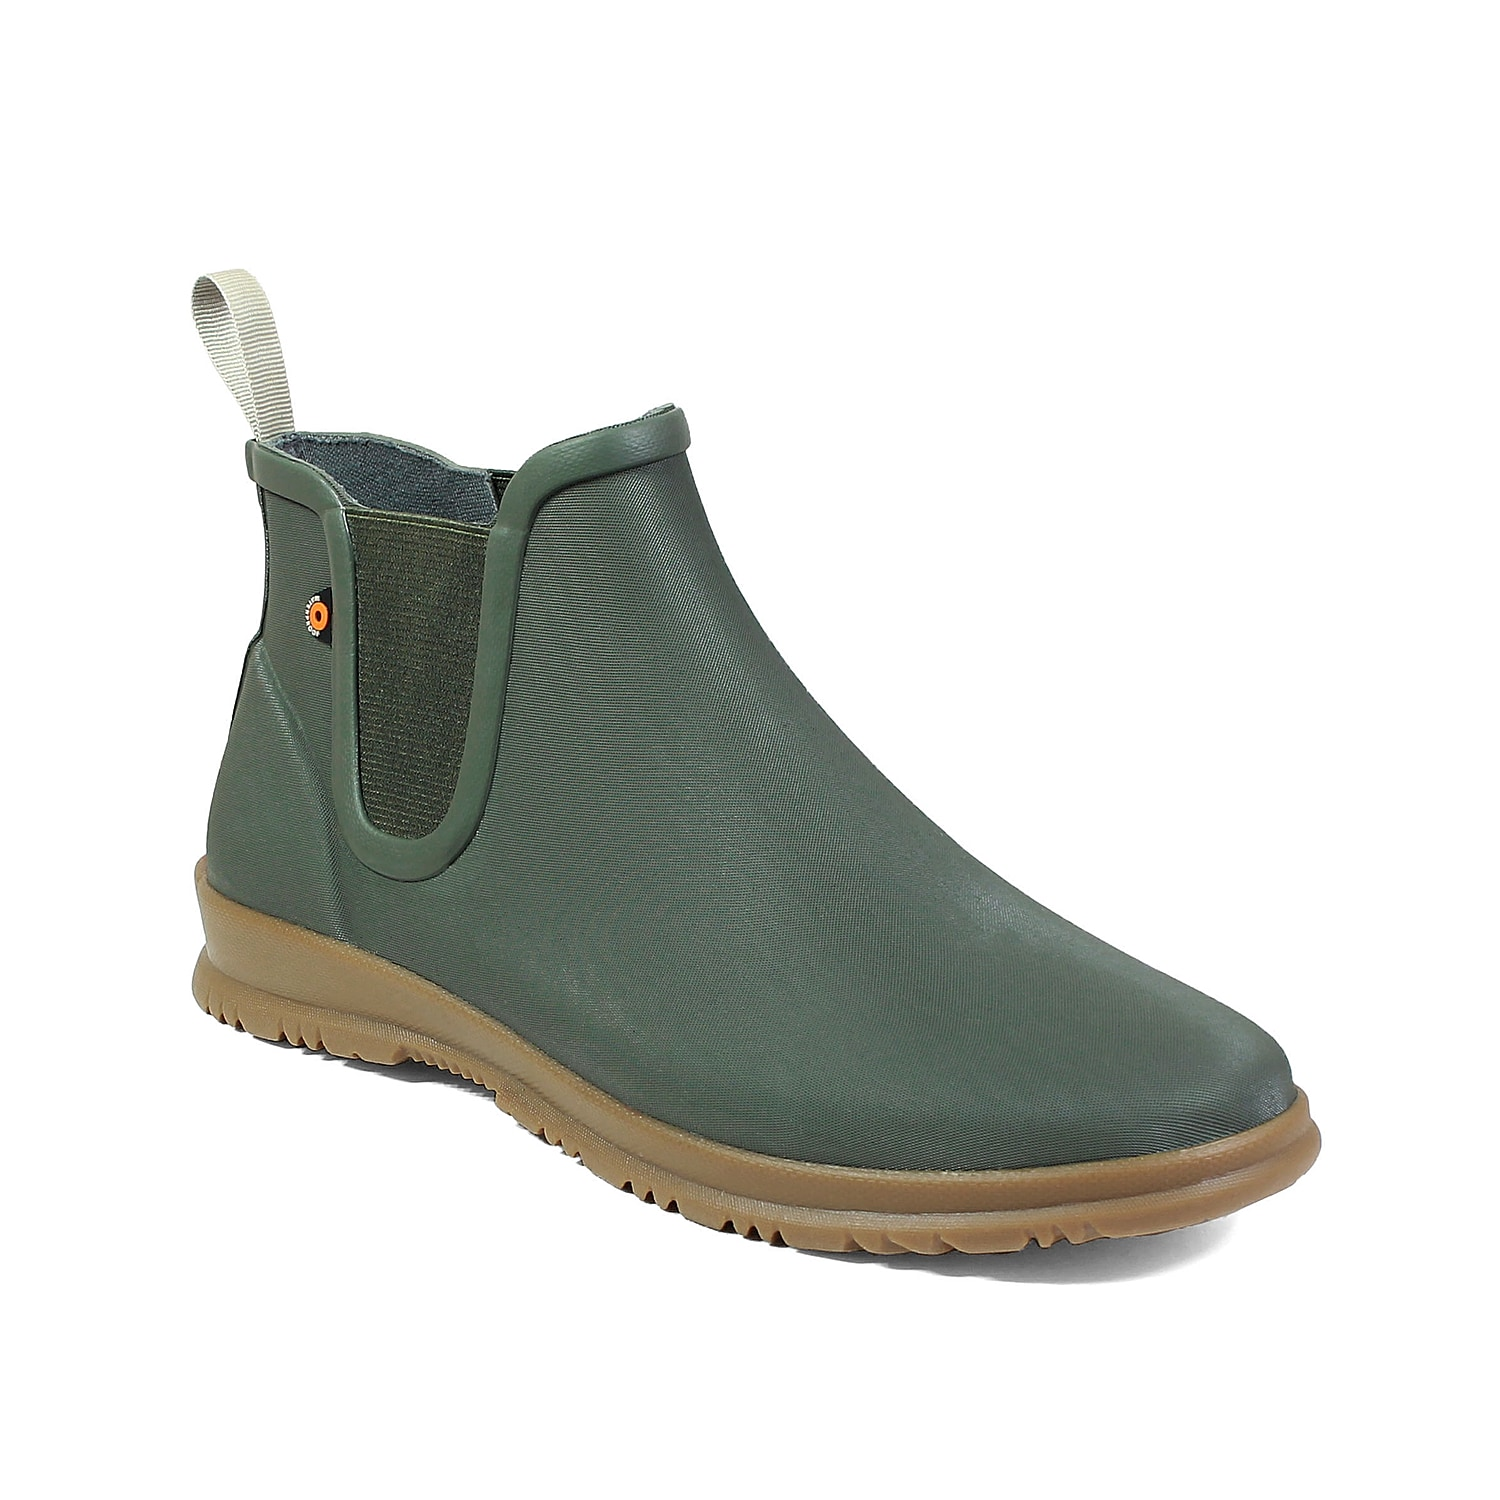 The Sweetpea bootie from Bogs is one shoe that isn\\\'t afraid of a few raindrops. This ankle boot features a waterproof rubber construction and DuraFresh anti-odor technology to keep you feeling dry and fresh all day. Click here for Boot Measuring Guide.